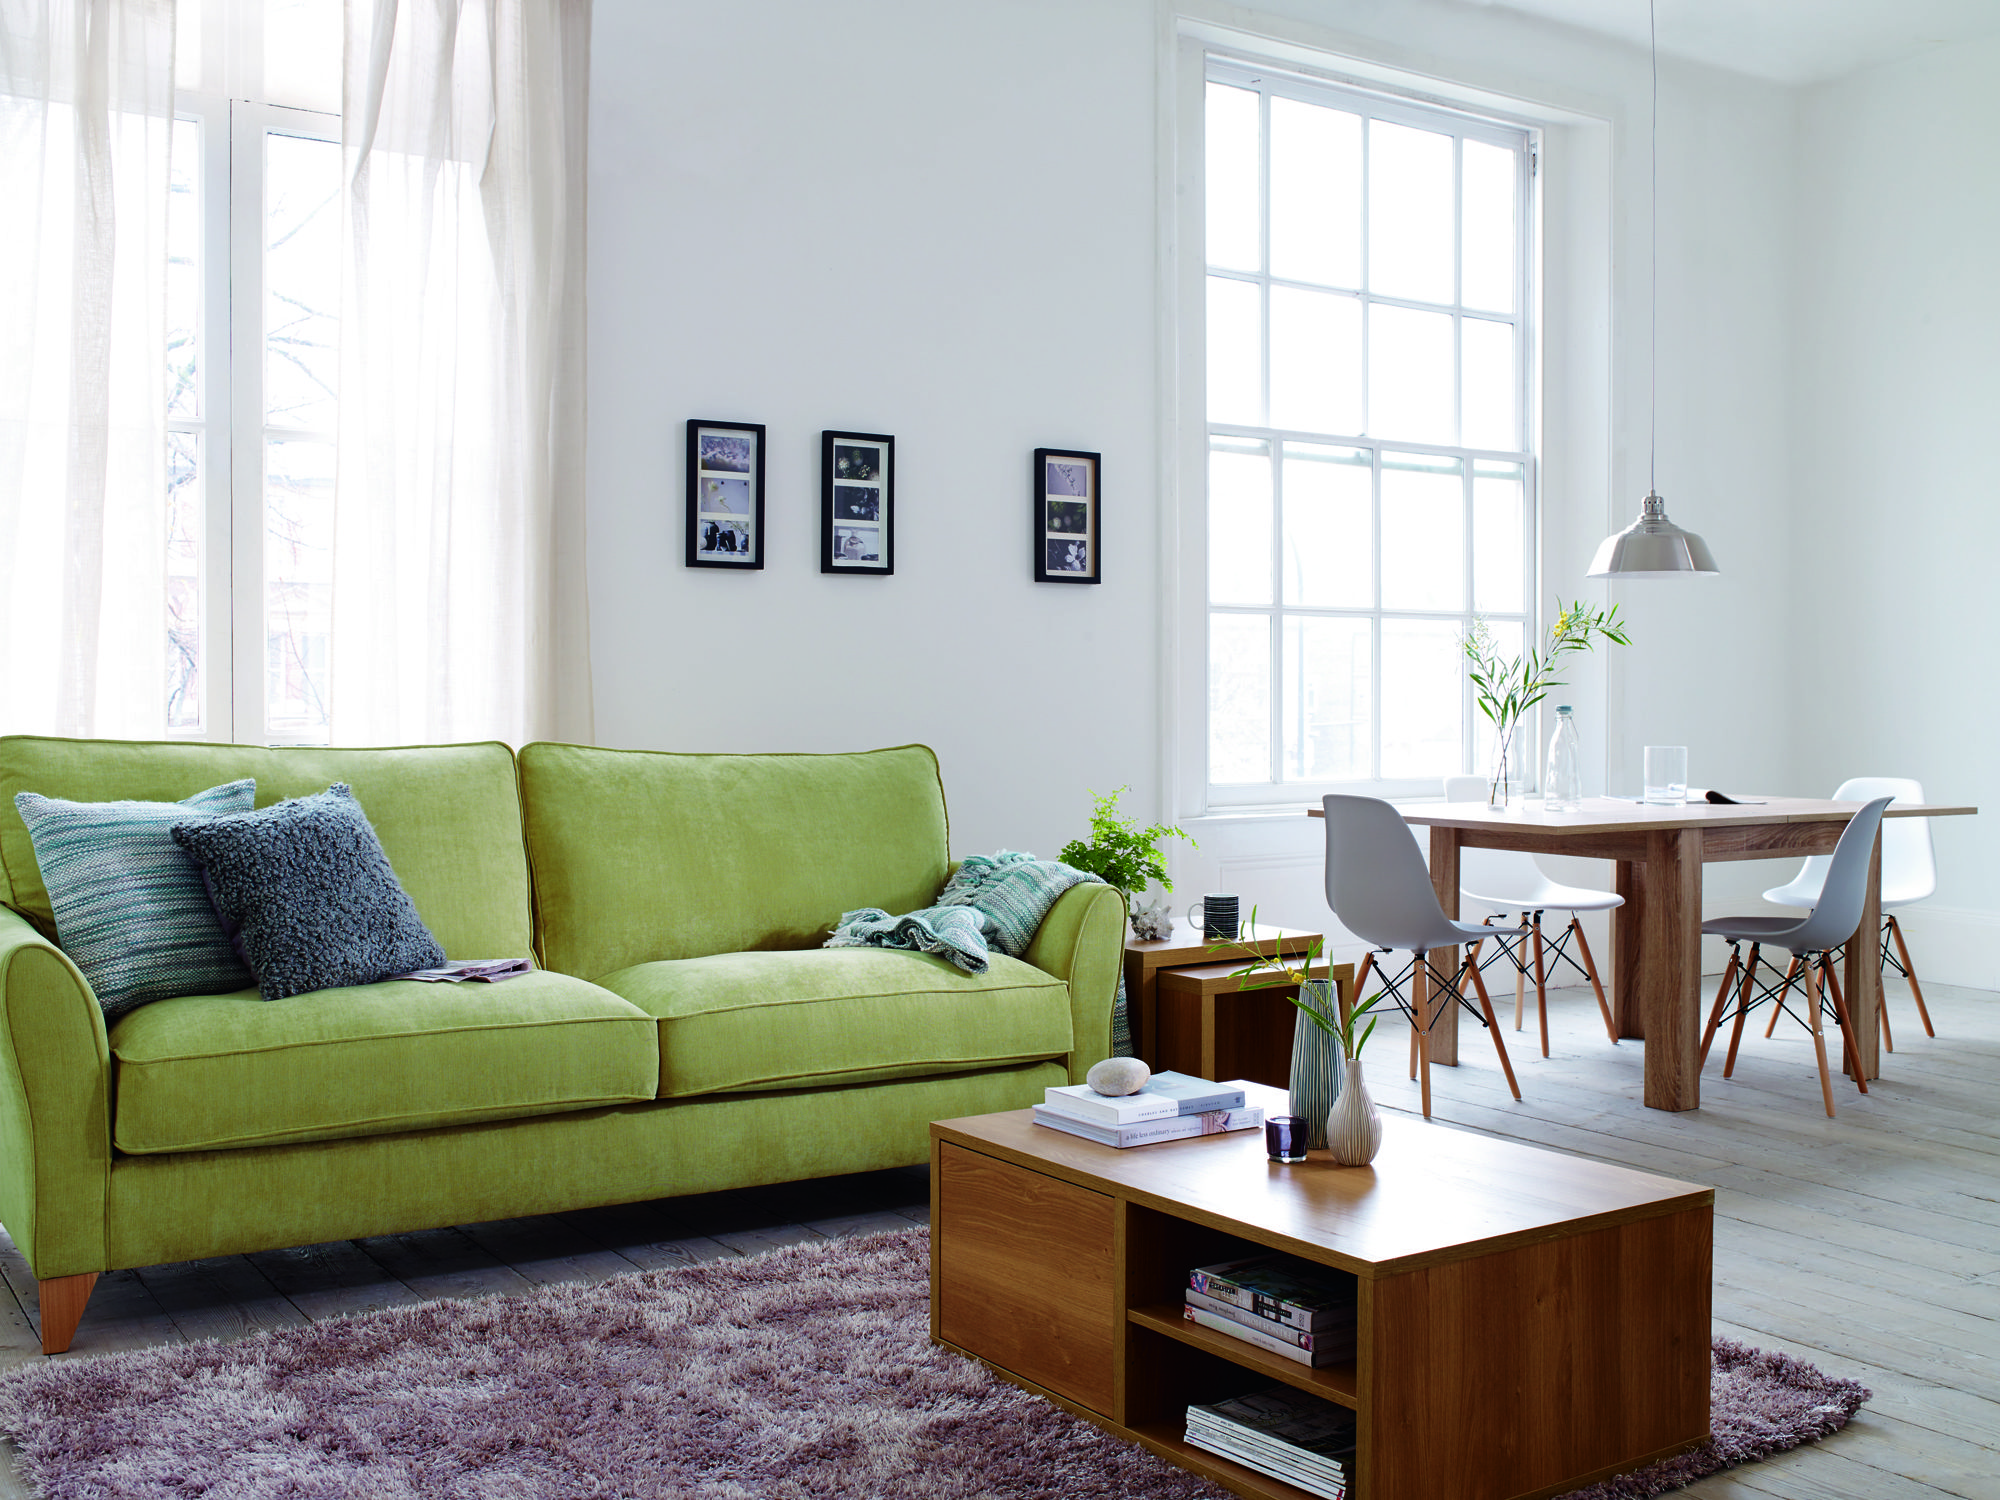 Awesome Lime Green Sofa To Bring A Bright Colour To A Basic Decorated House, Be  Inspired